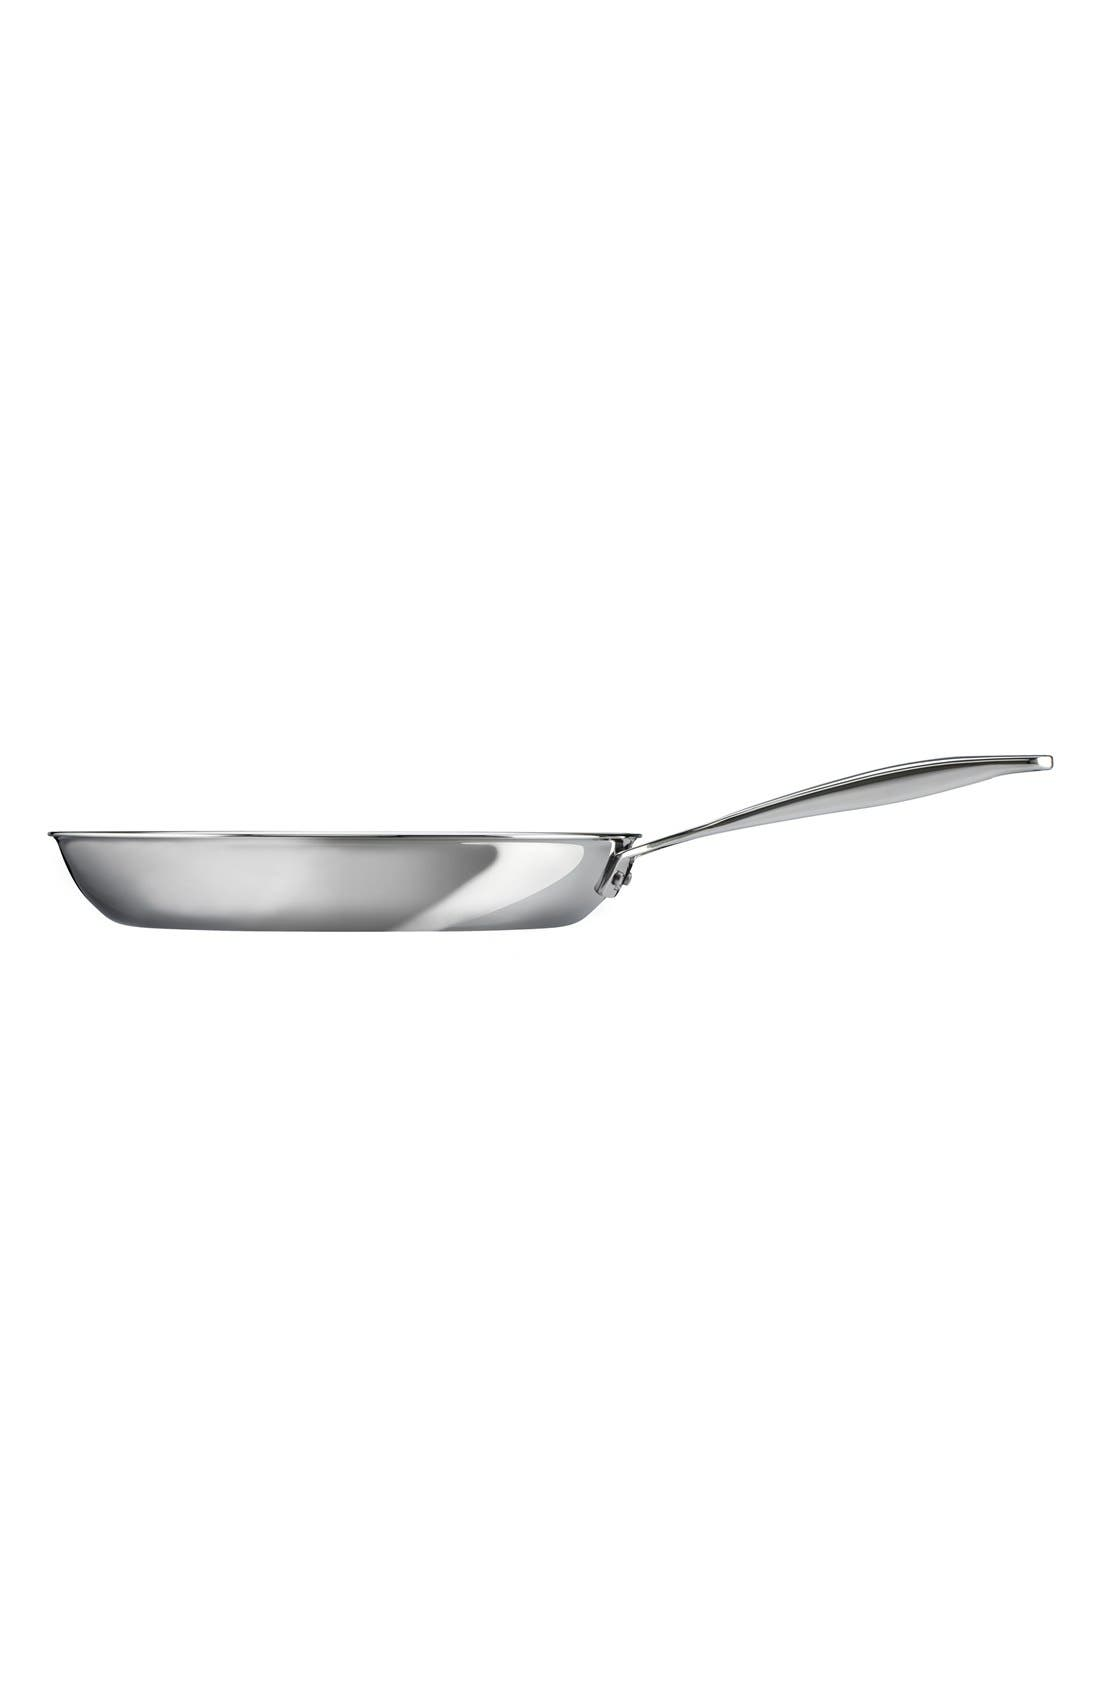 10 Inch Stainless Steel Fry Pan,                             Alternate thumbnail 3, color,                             Silver